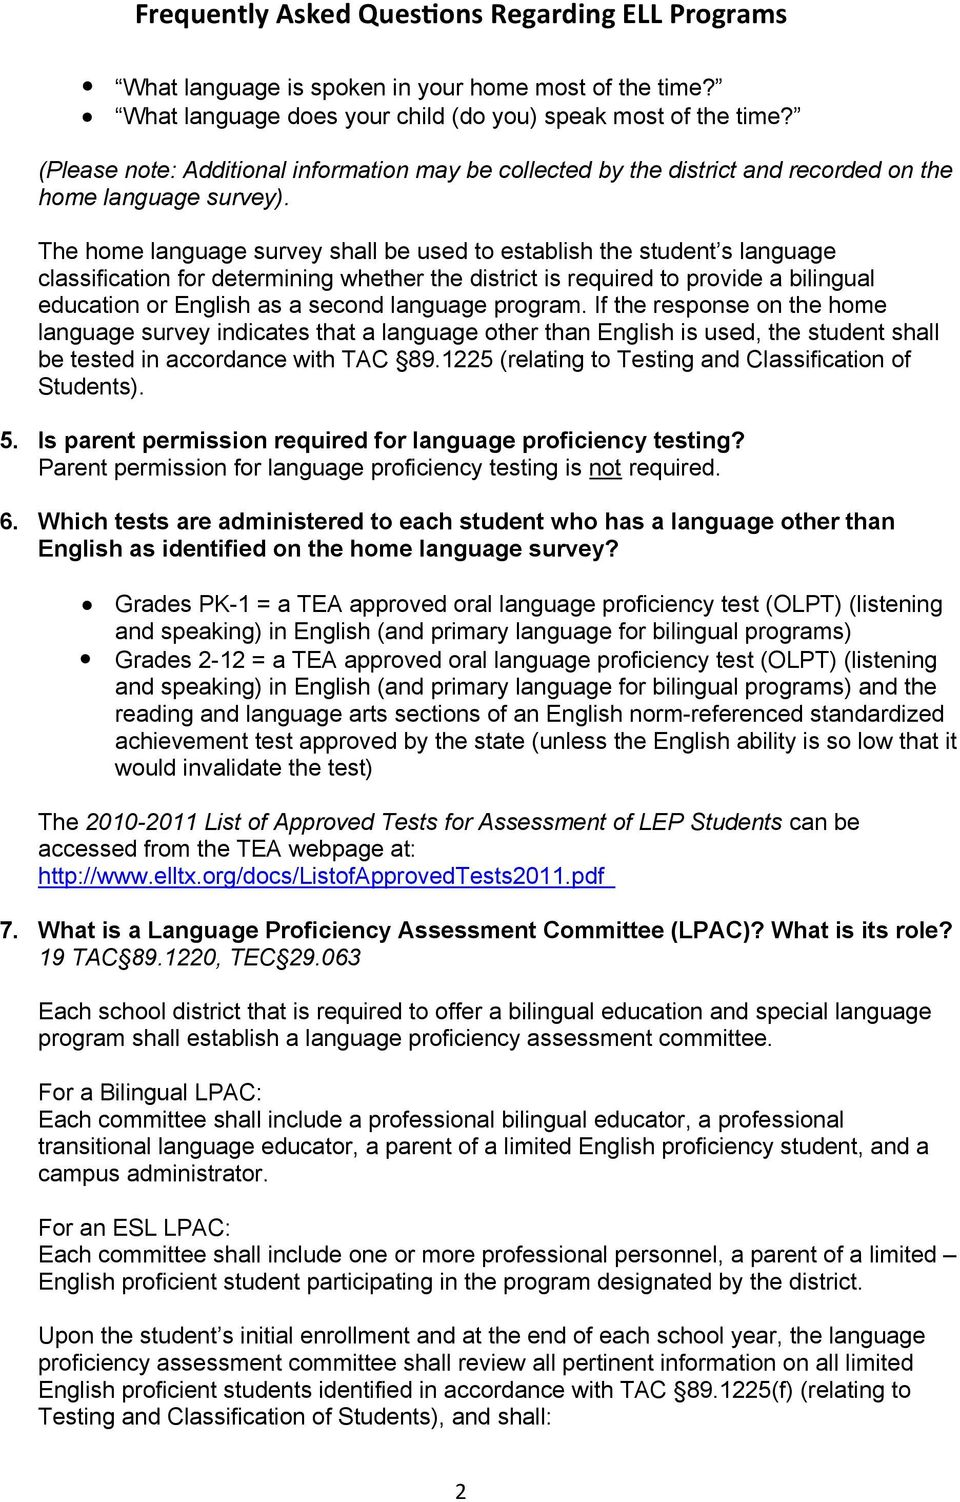 The home language survey shall be used to establish the student s language classification for determining whether the district is required to provide a bilingual education or English as a second